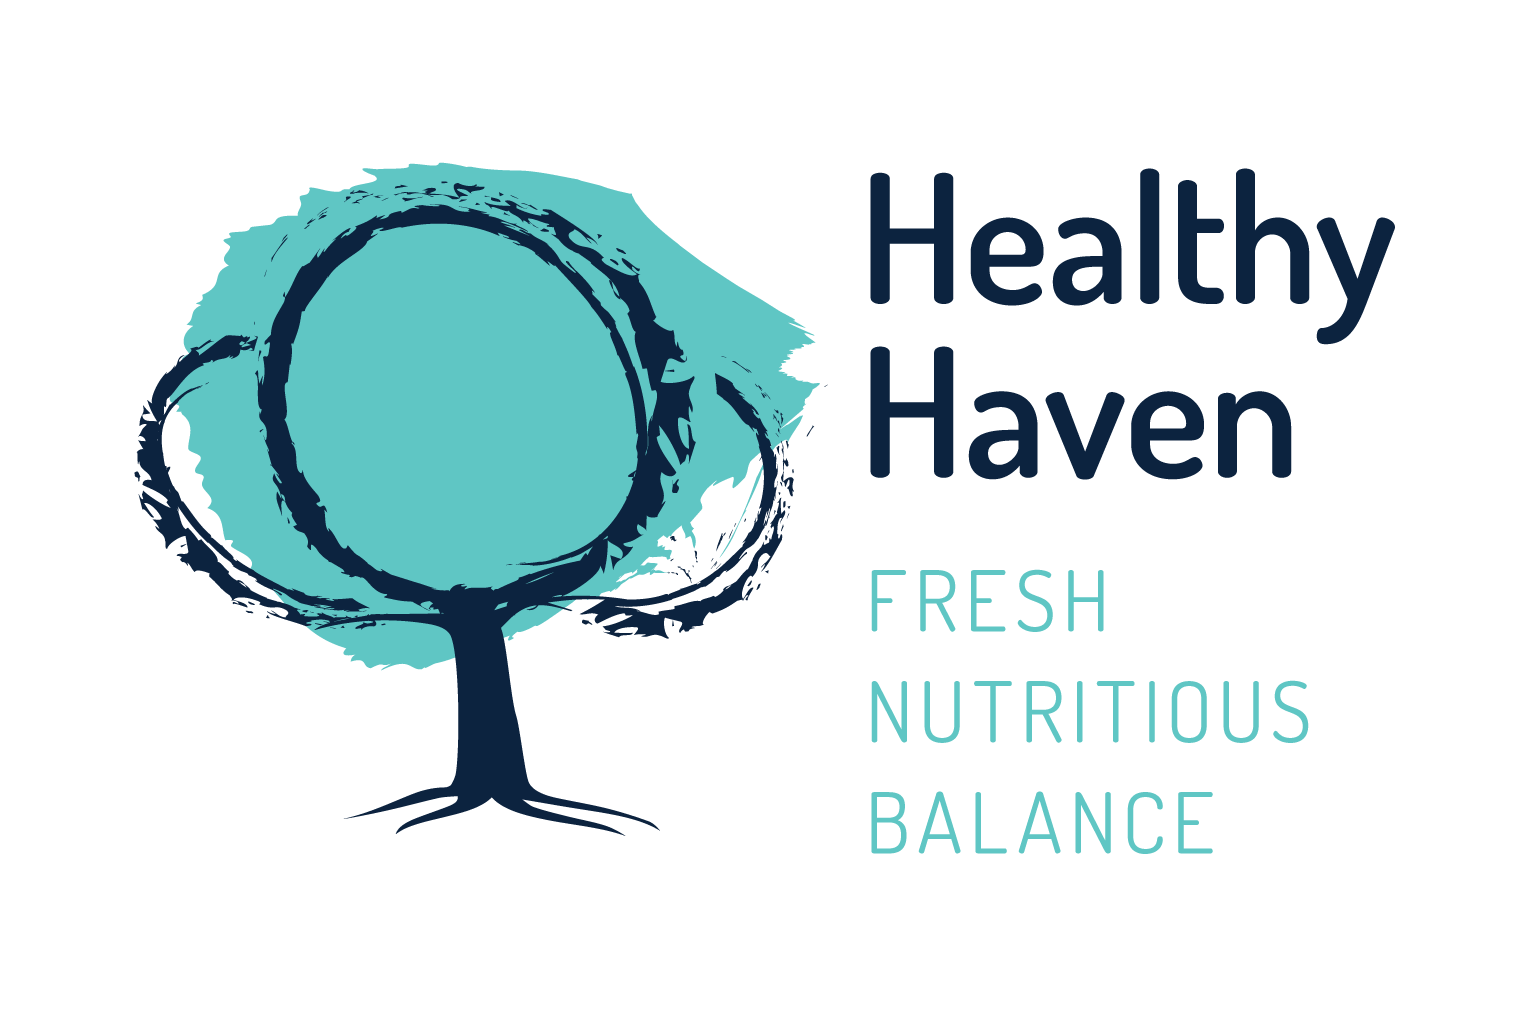 healthy haven logo